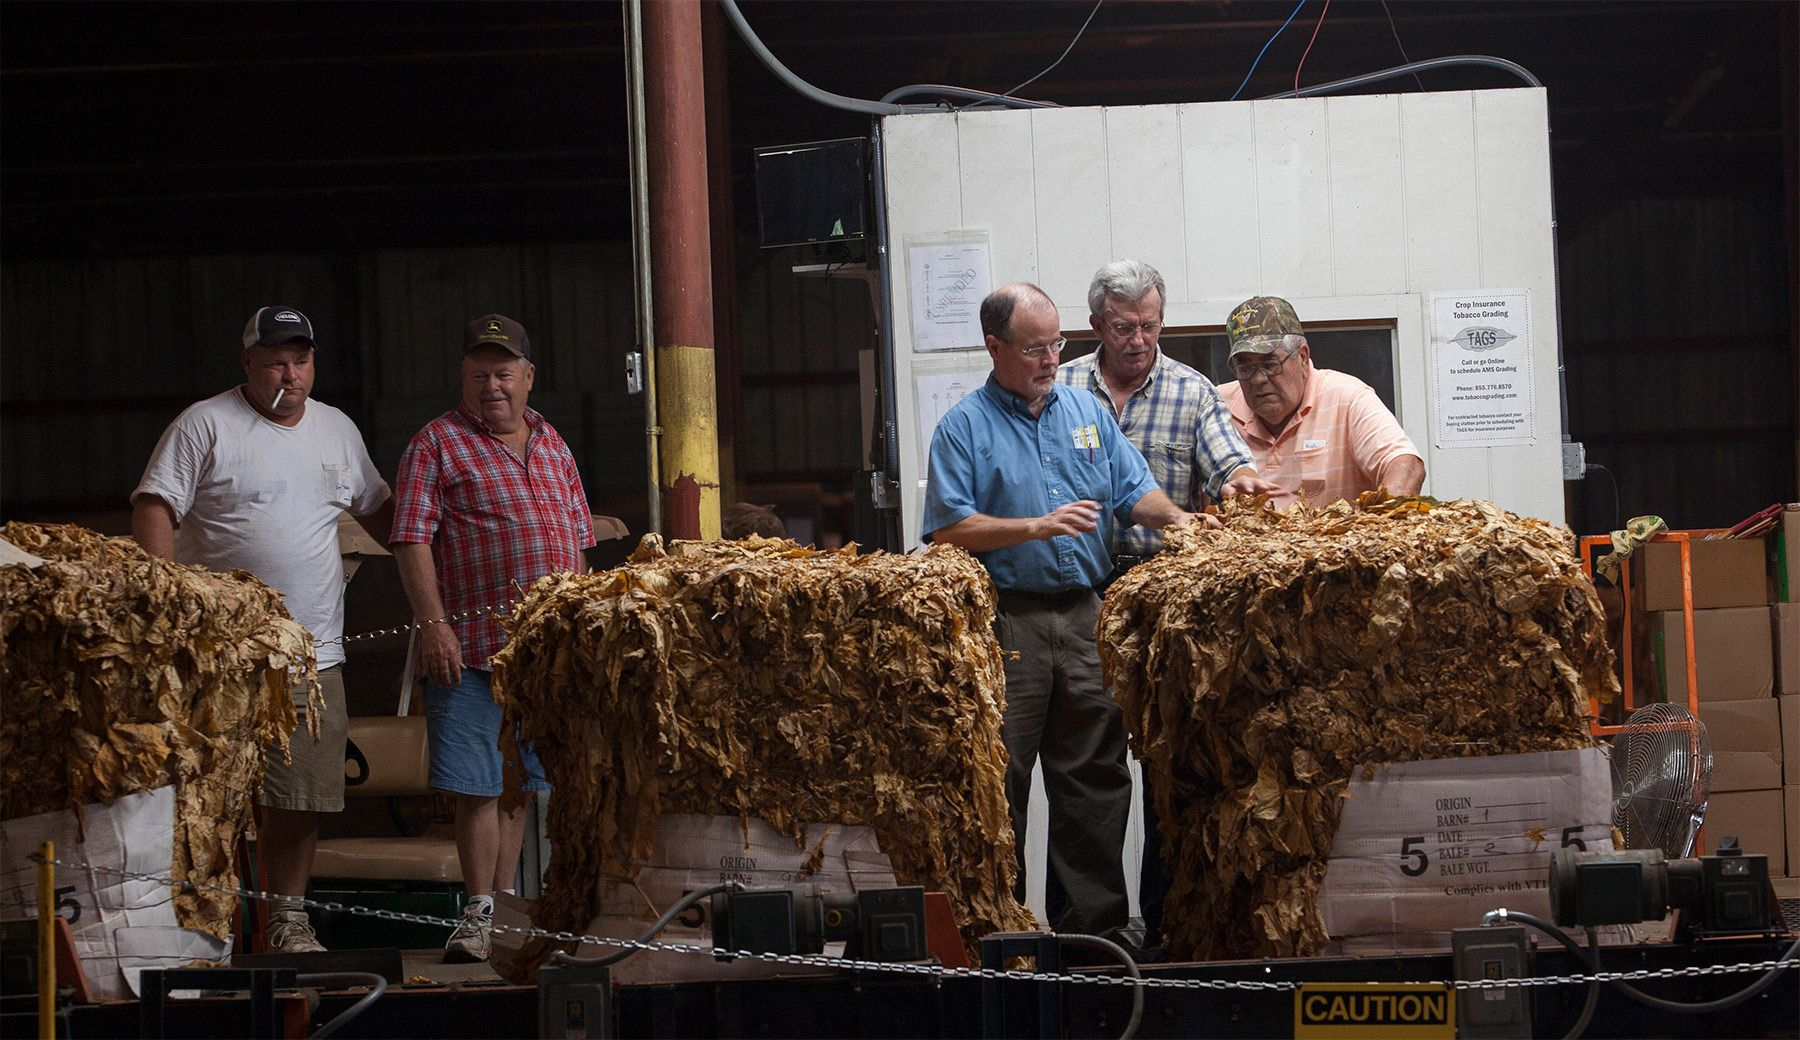 US Tobacco graders Jimmy Allen (third from left) and Scott Harrington, discuss a tobacco grade with warehouse manager Elton Johnson at the Big L Warehouse in Mullins, South Carolina July 29, 2013. The farm cooperative US Tobacco sets the standard for pricing and quality of the area farmer's crops at this warehouse. The traditional tobacco harvest requires many labor intensive hours to bring the crop to market, especially with the flue-cured variety prominent in the southern United States. With the growing health concerns with smoking in the US, most farmers use market cooperatives to sell their crop to the growing markets in China.      Picture taken on July 29, 2013.   REUTERS/Randall Hill (UNITED STATES)